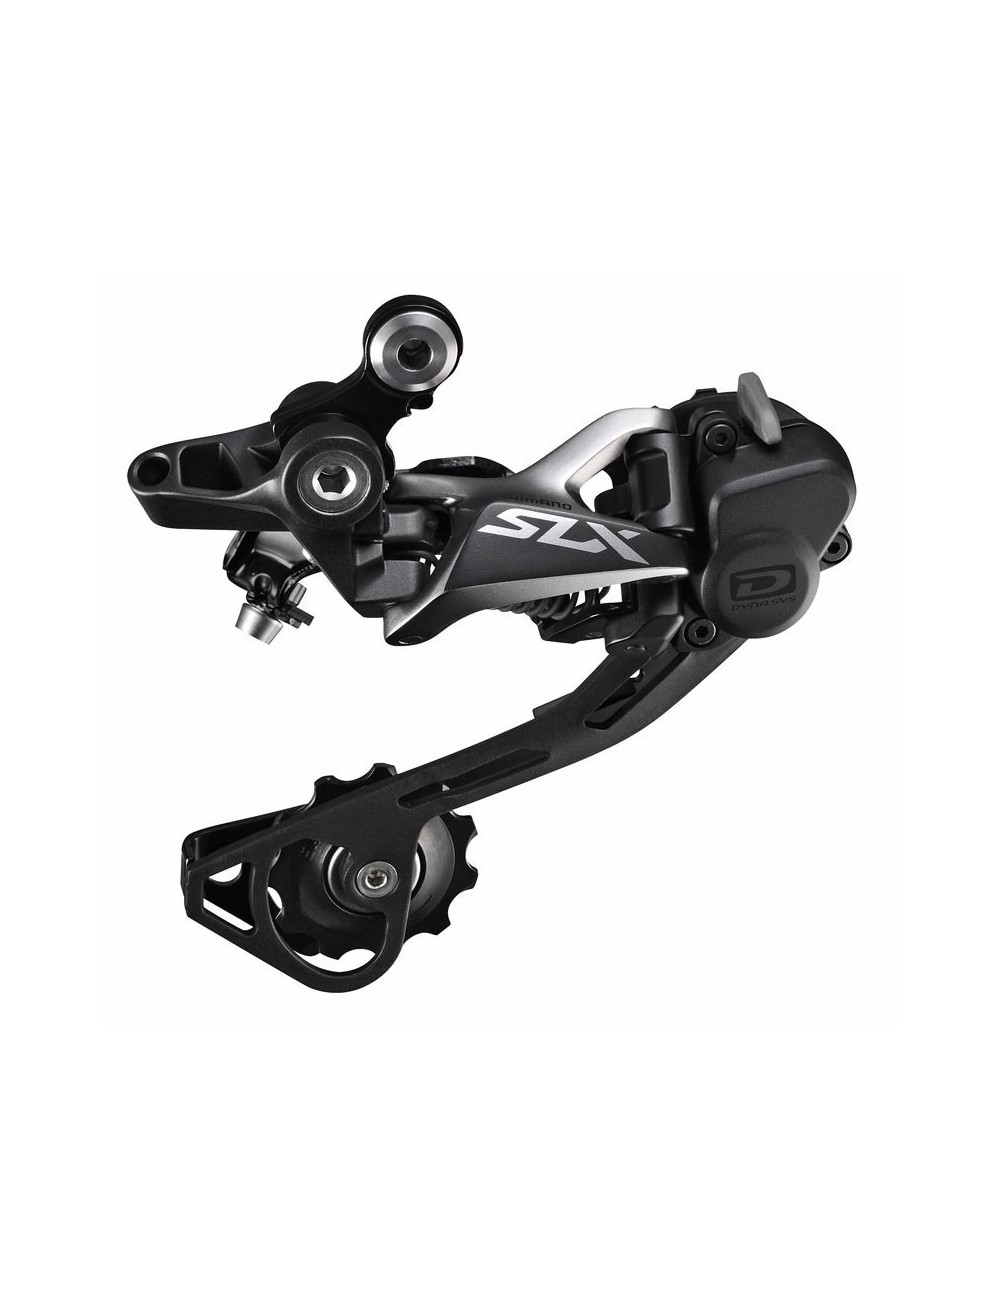 MUDANCA TRAS SHIMANO SLX RD-M7000 11V CAIXA MEDIA SHADOW+